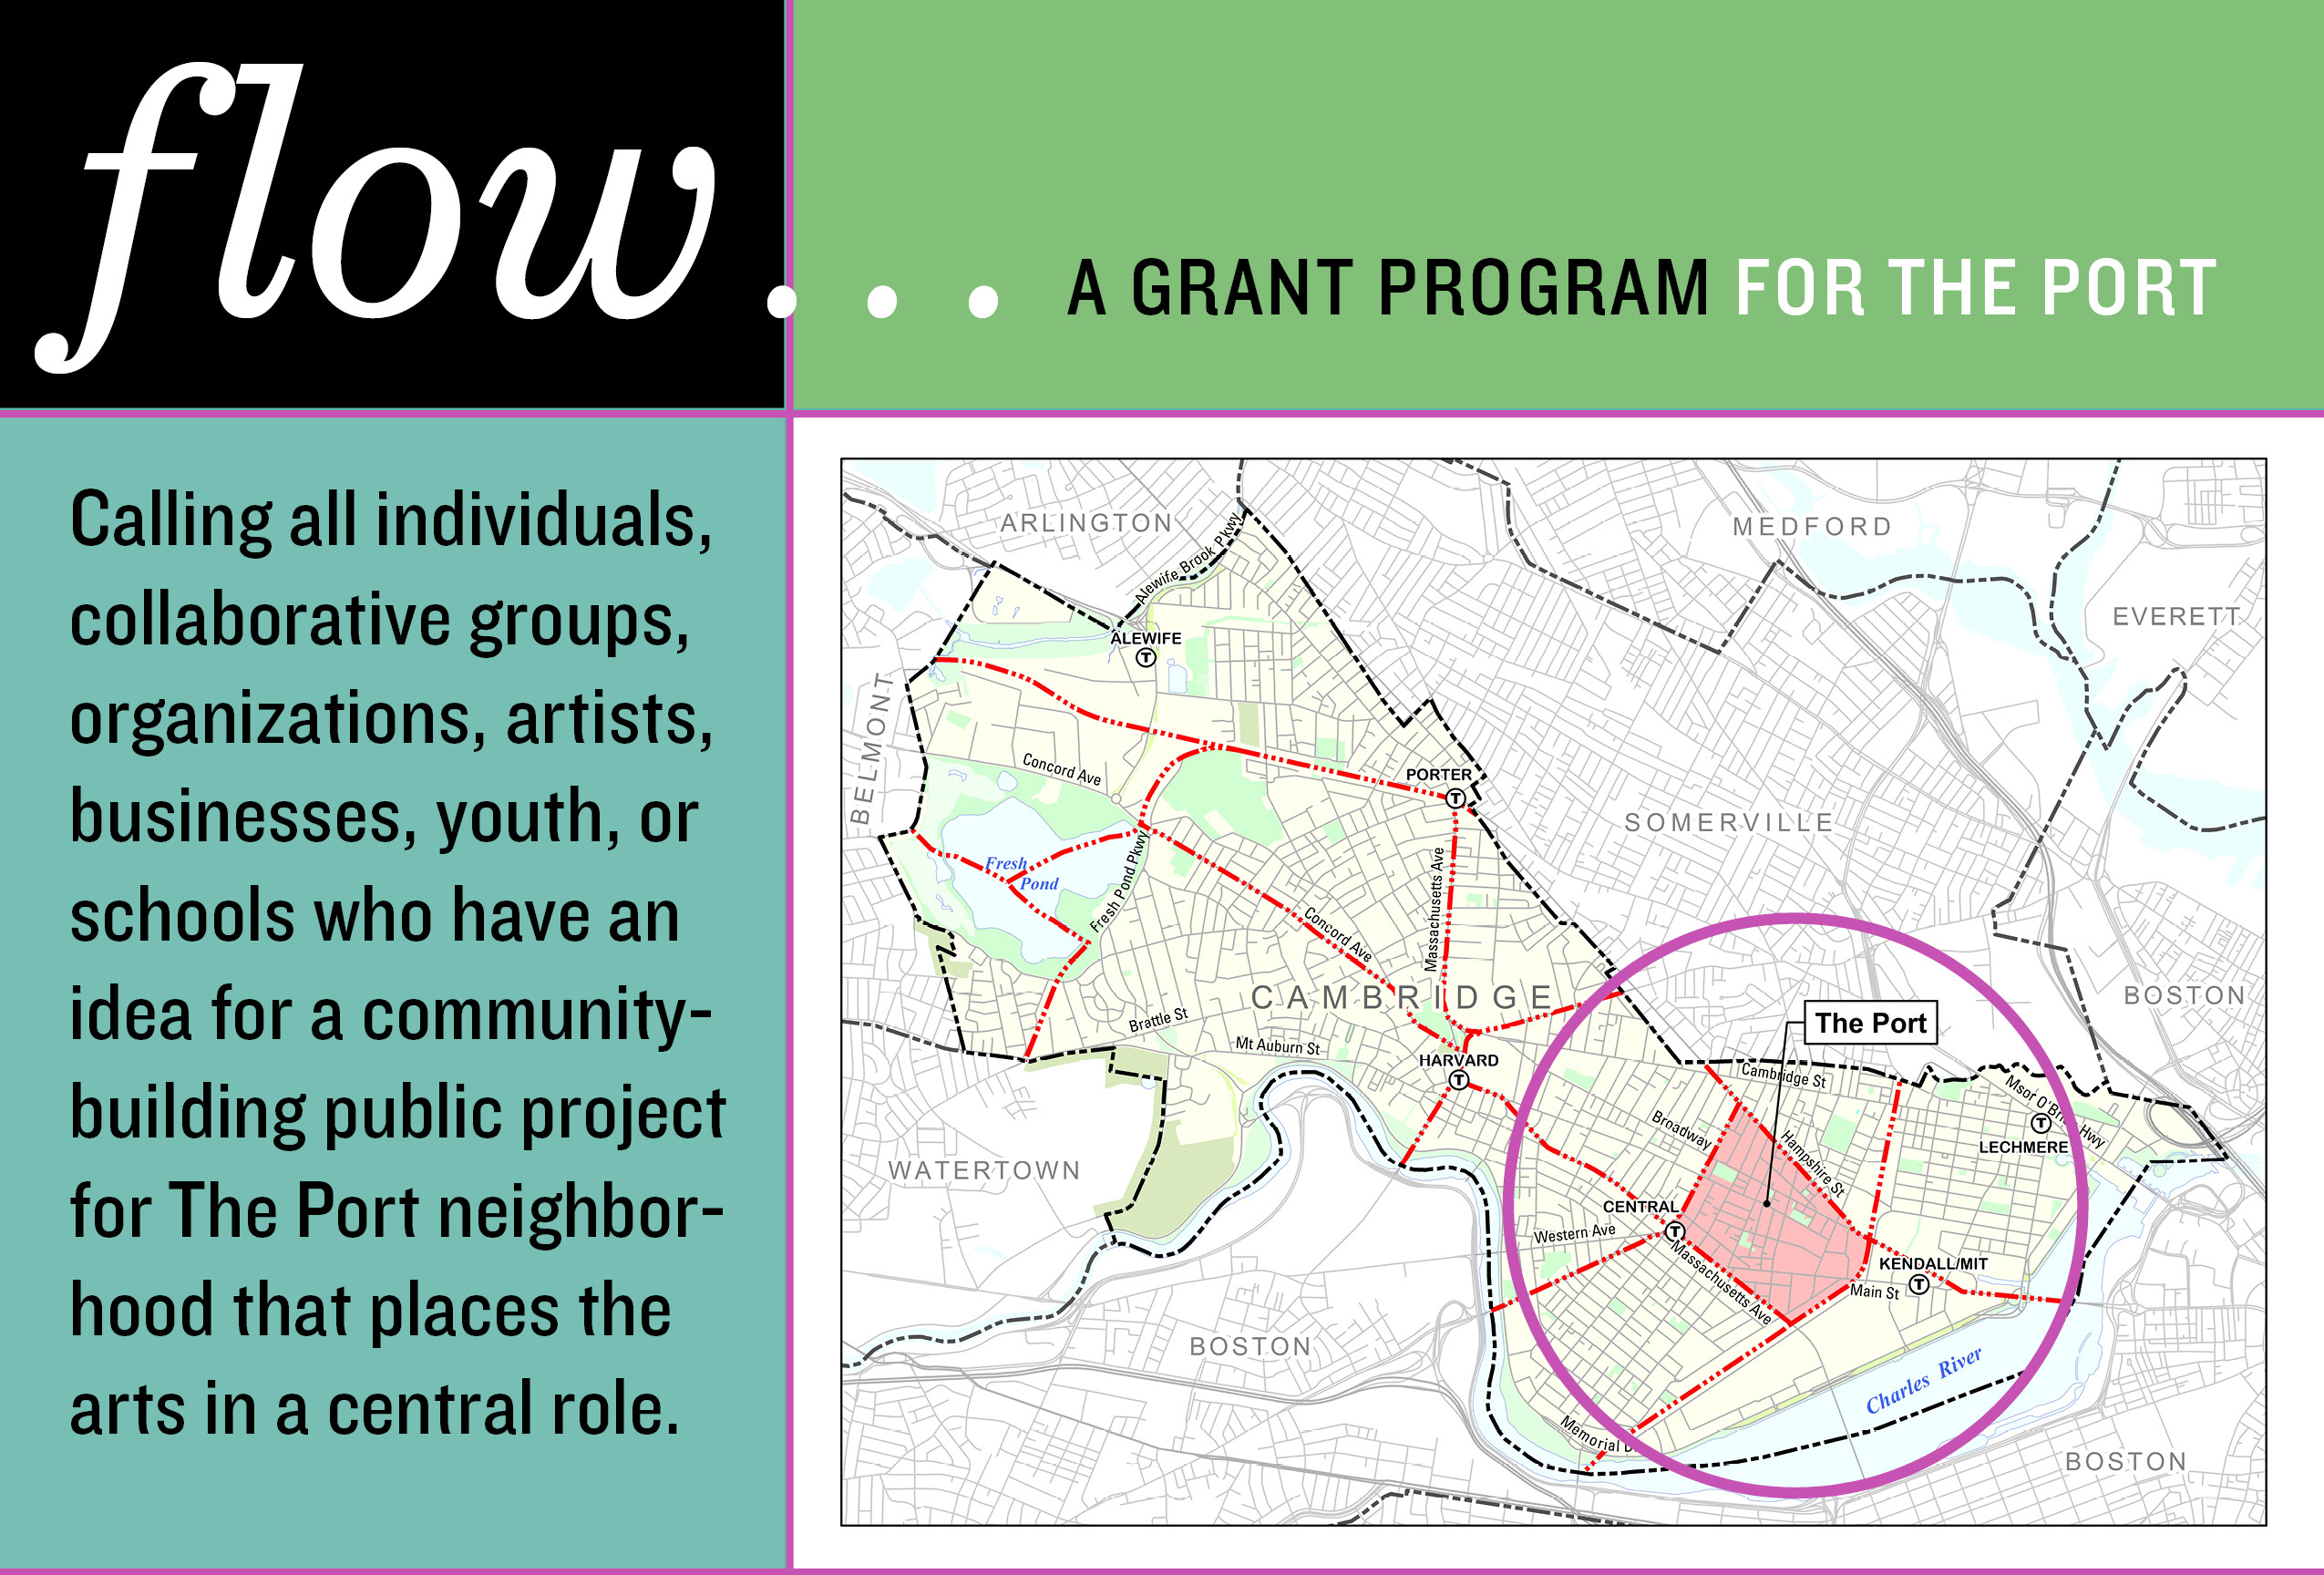 Flow a grant program for The Port: Calling all individuals, collaborative groups, organizations, artists, businesses, youth, or schools who have an idea for a community building project for The Port neighborhood that places the arts in a central role.